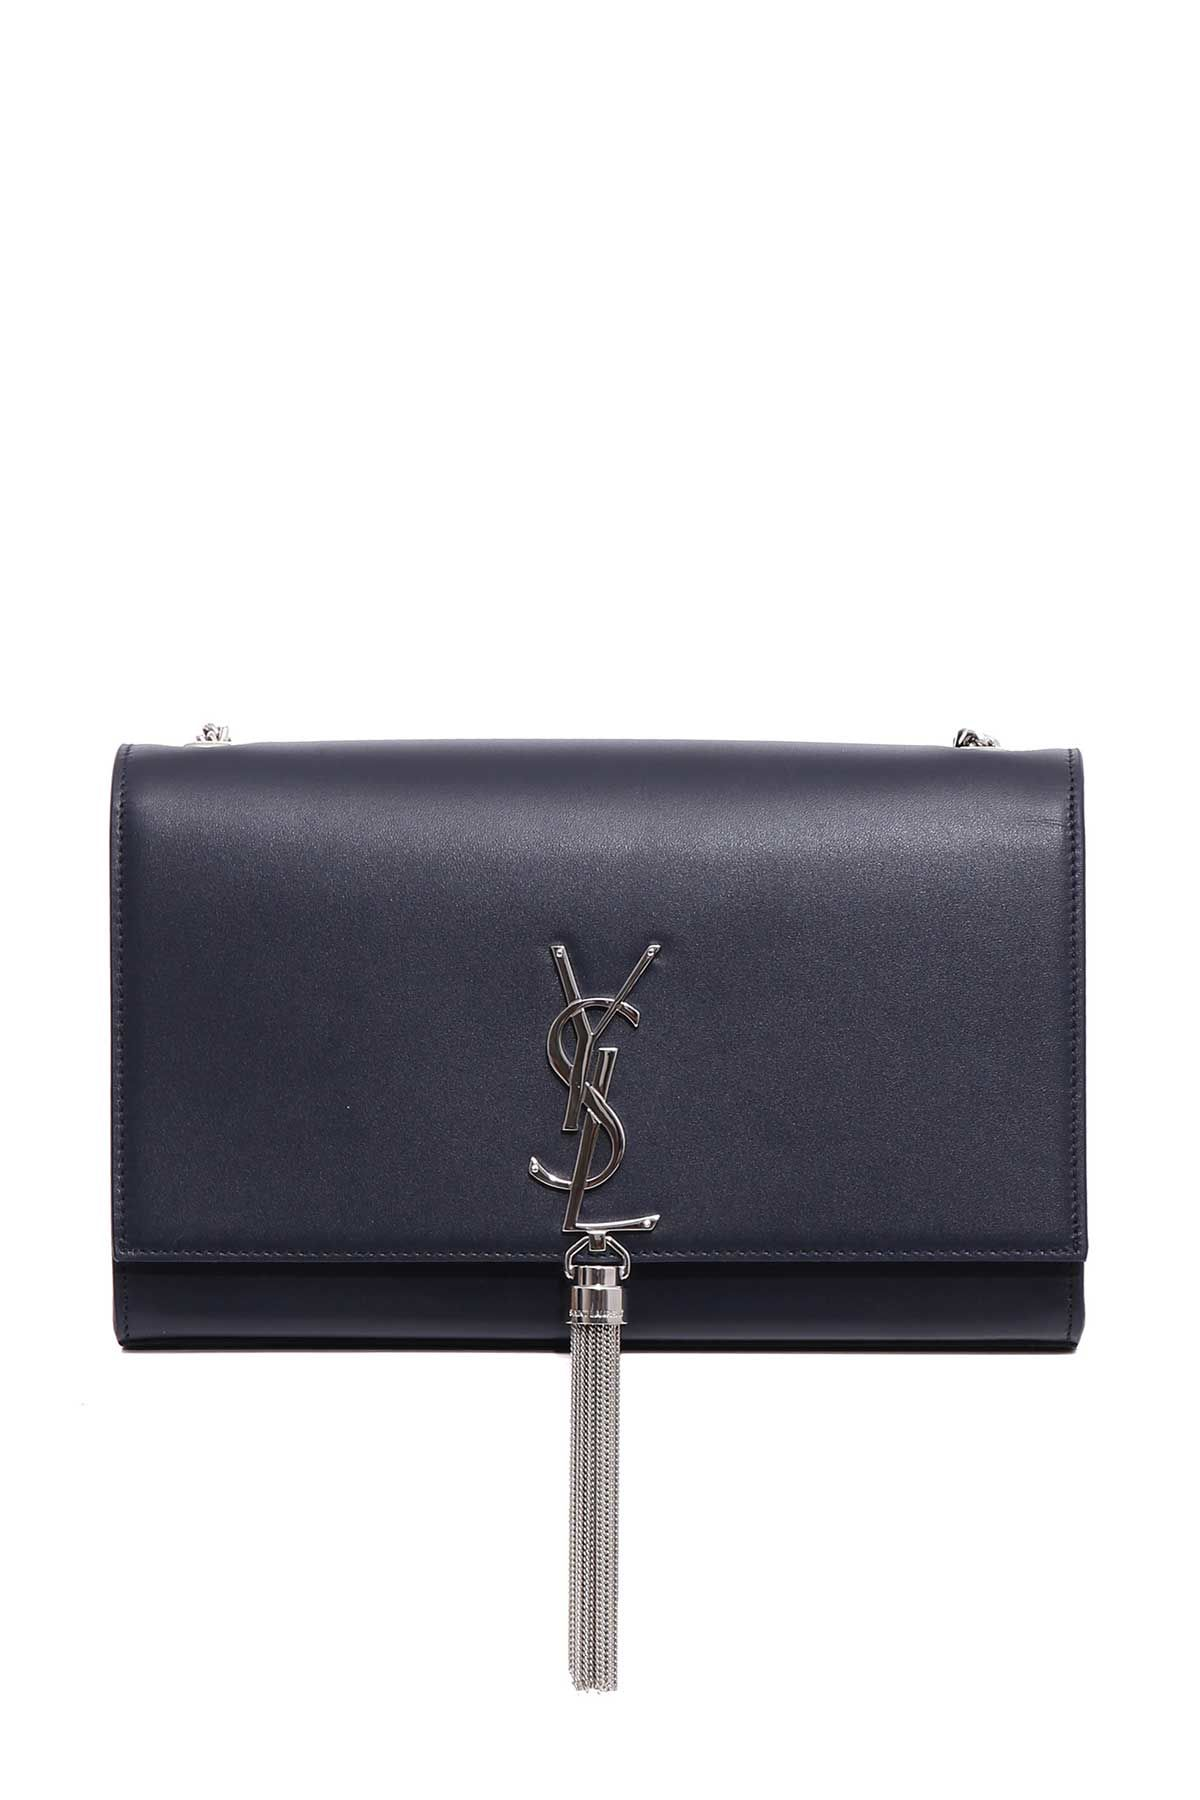 Saint Laurent Monogramme Medium kate Shoulder Bag